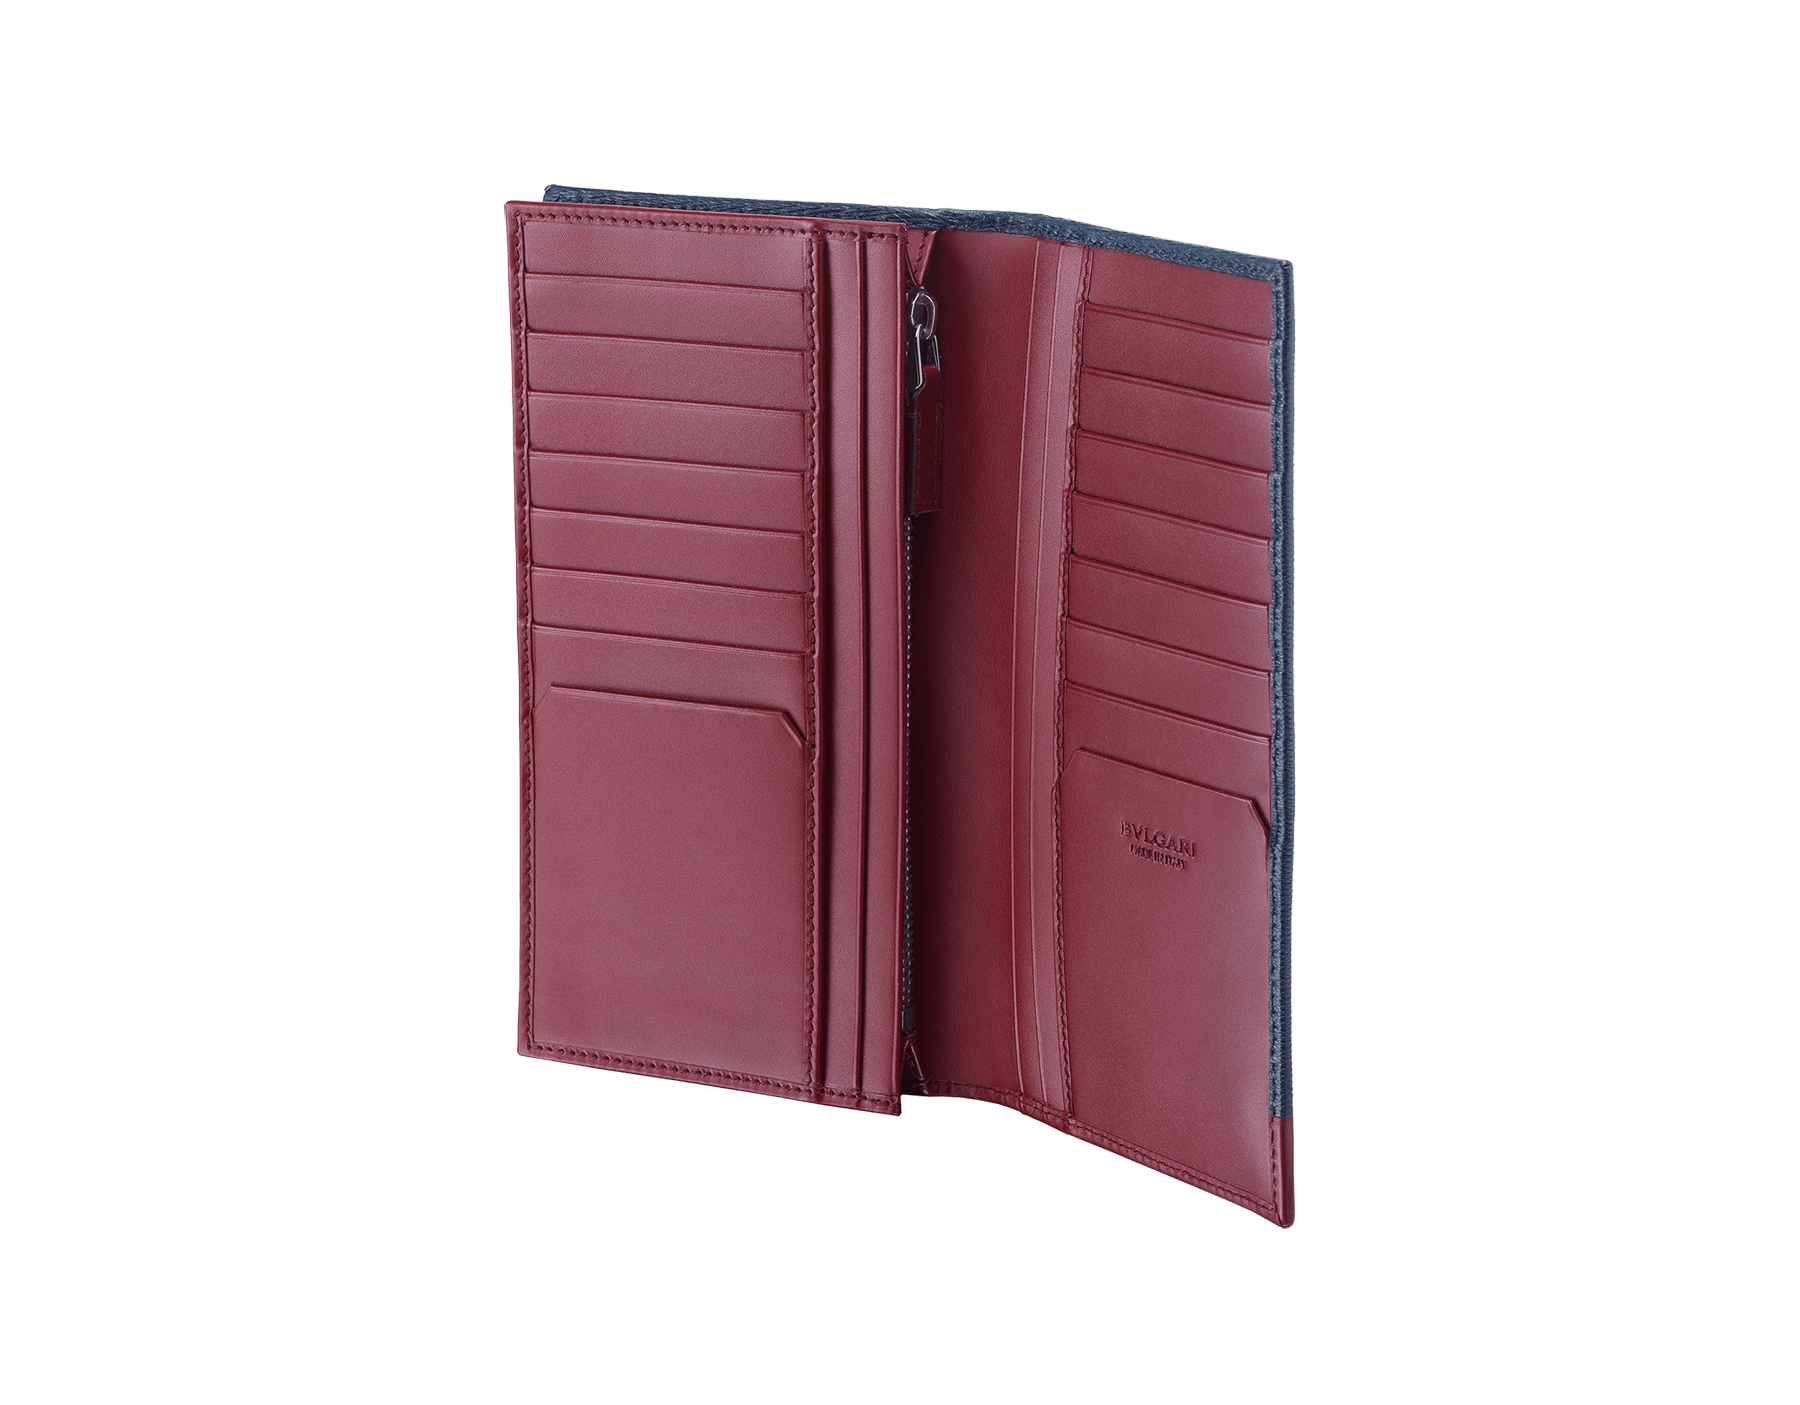 Serpenti Scaglie men's wallet for yen in denim sapphire grazed calf leather with brass and roman garnet calf leather. Bvlgari logo engraved on the hexagonal scaglie metal plate. 288463 image 2